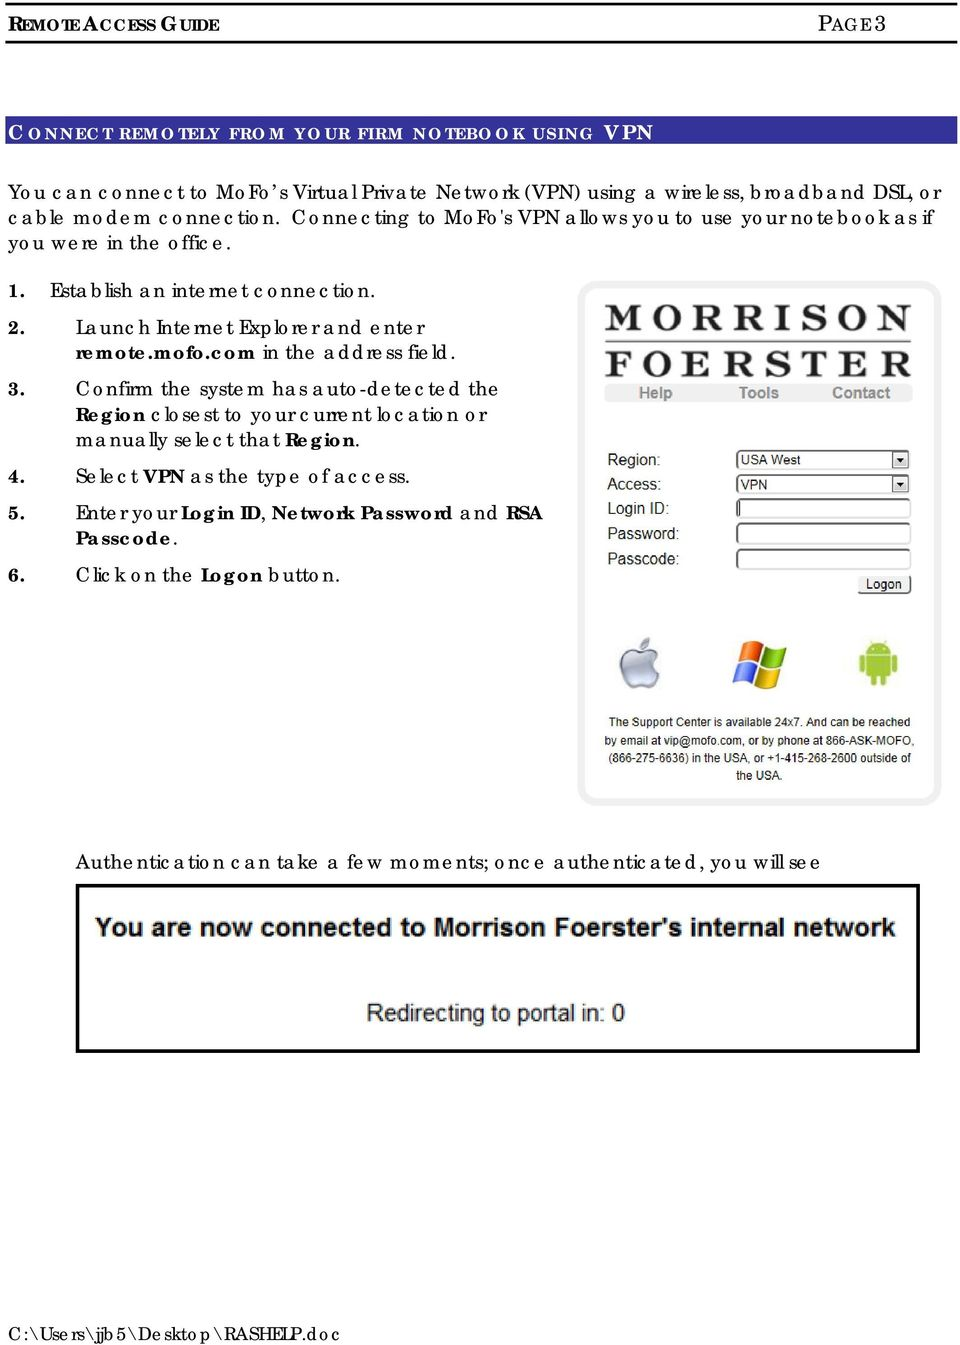 Launch Internet Explorer and enter remote.mofo.com in the address field. 3.